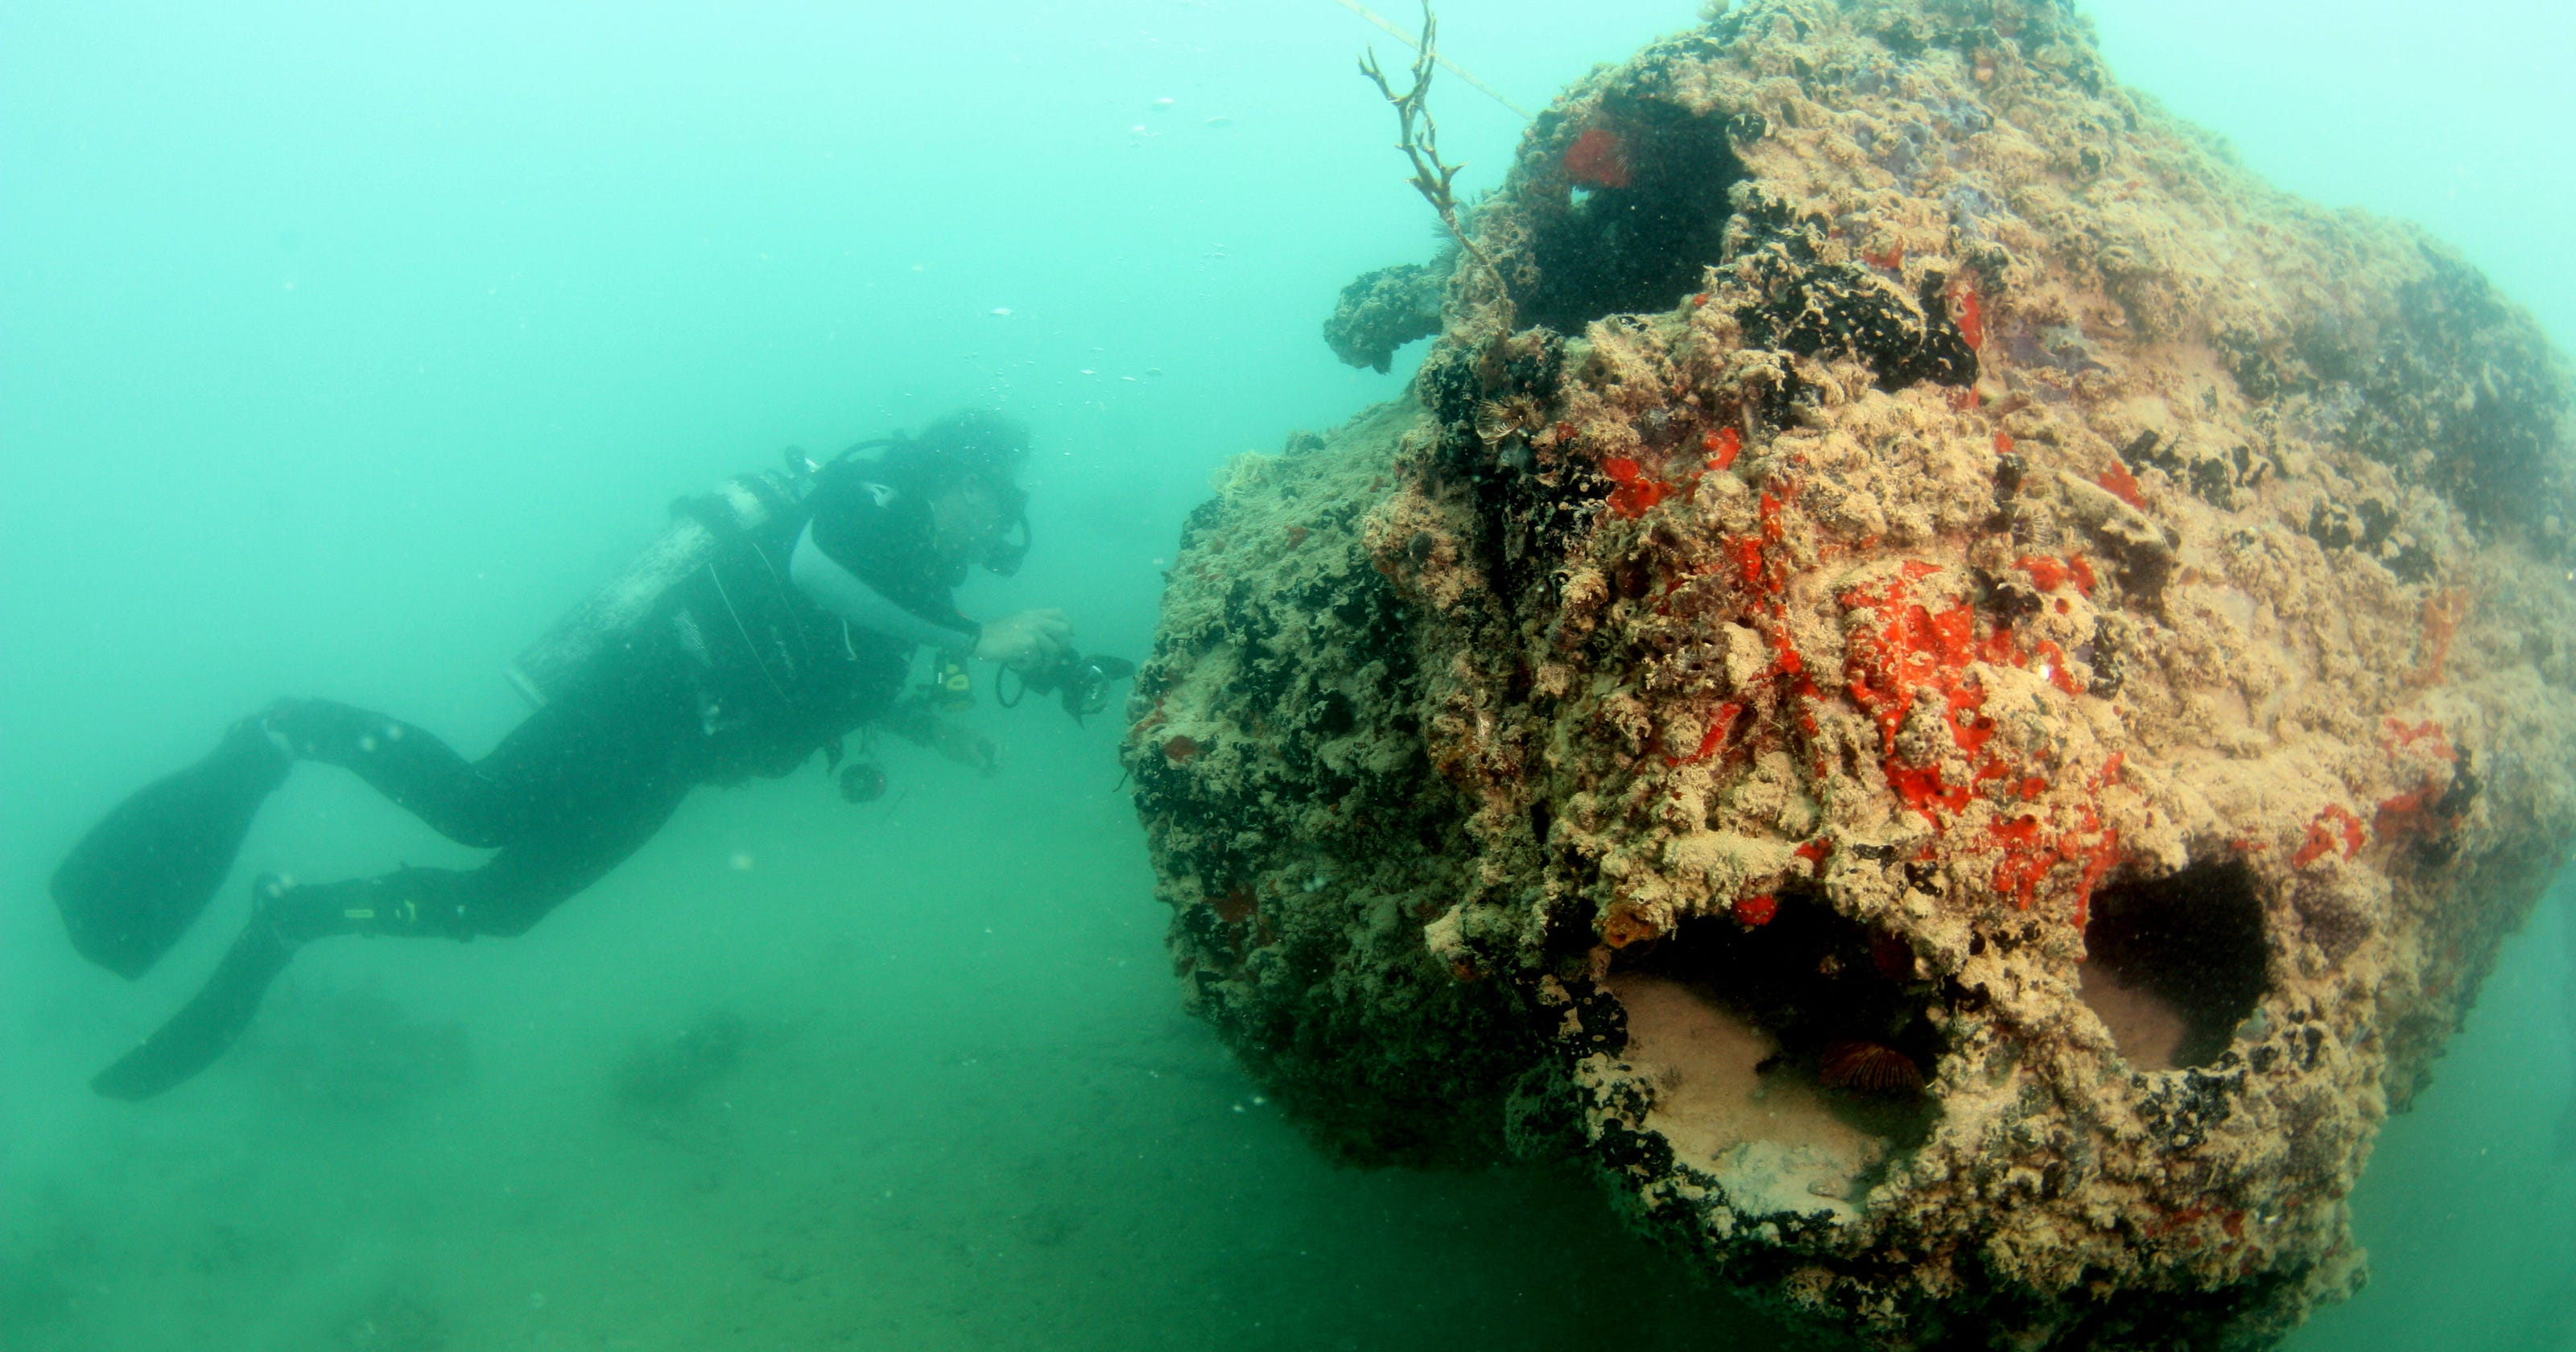 images seaplane that sank in pearl harbor attack